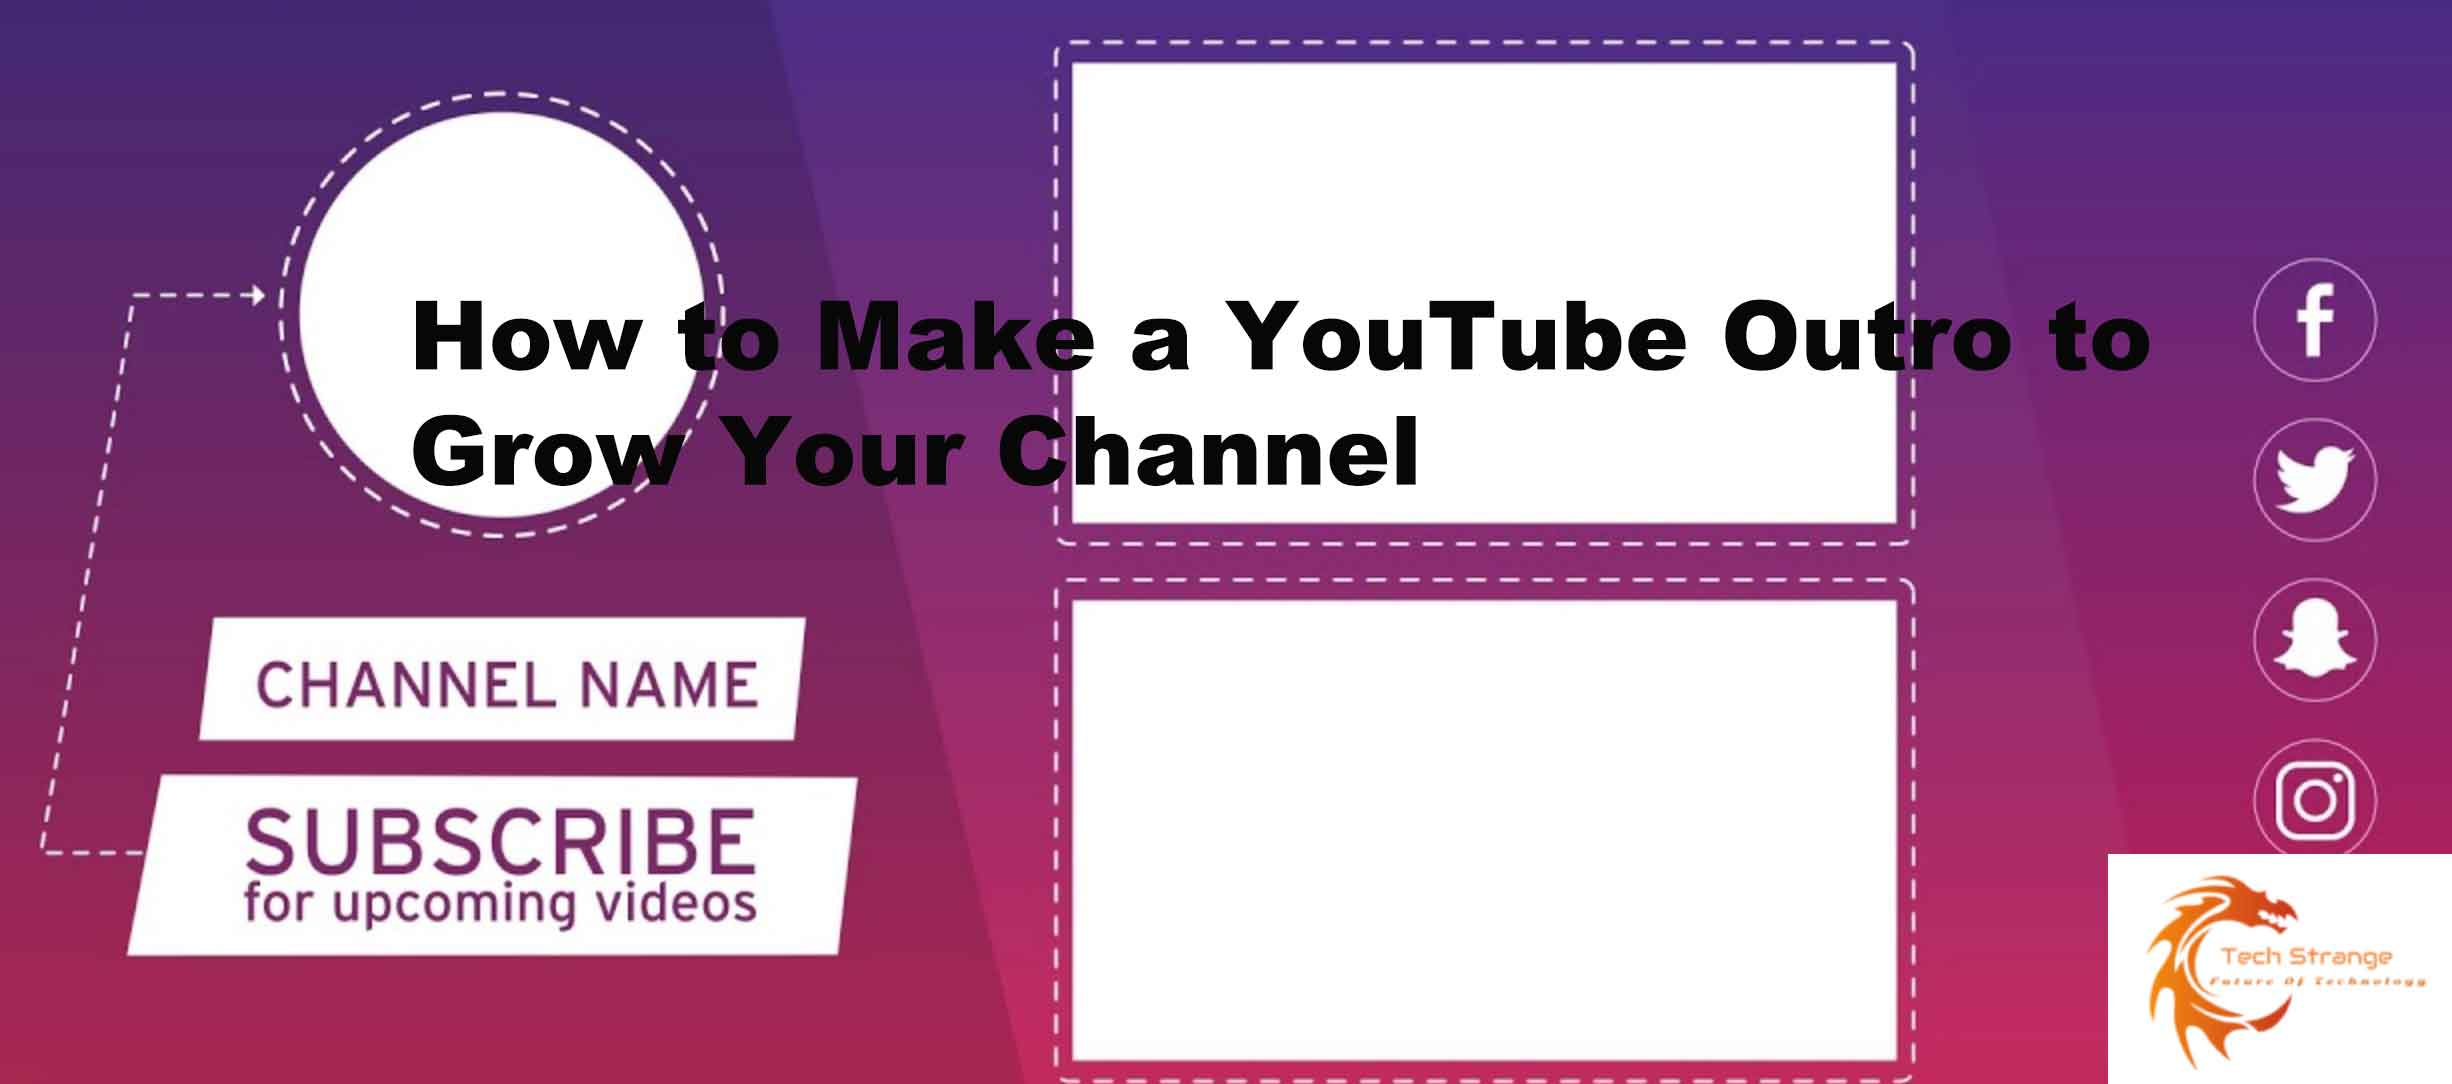 How to Make a YouTube Outro to Grow Your Channel